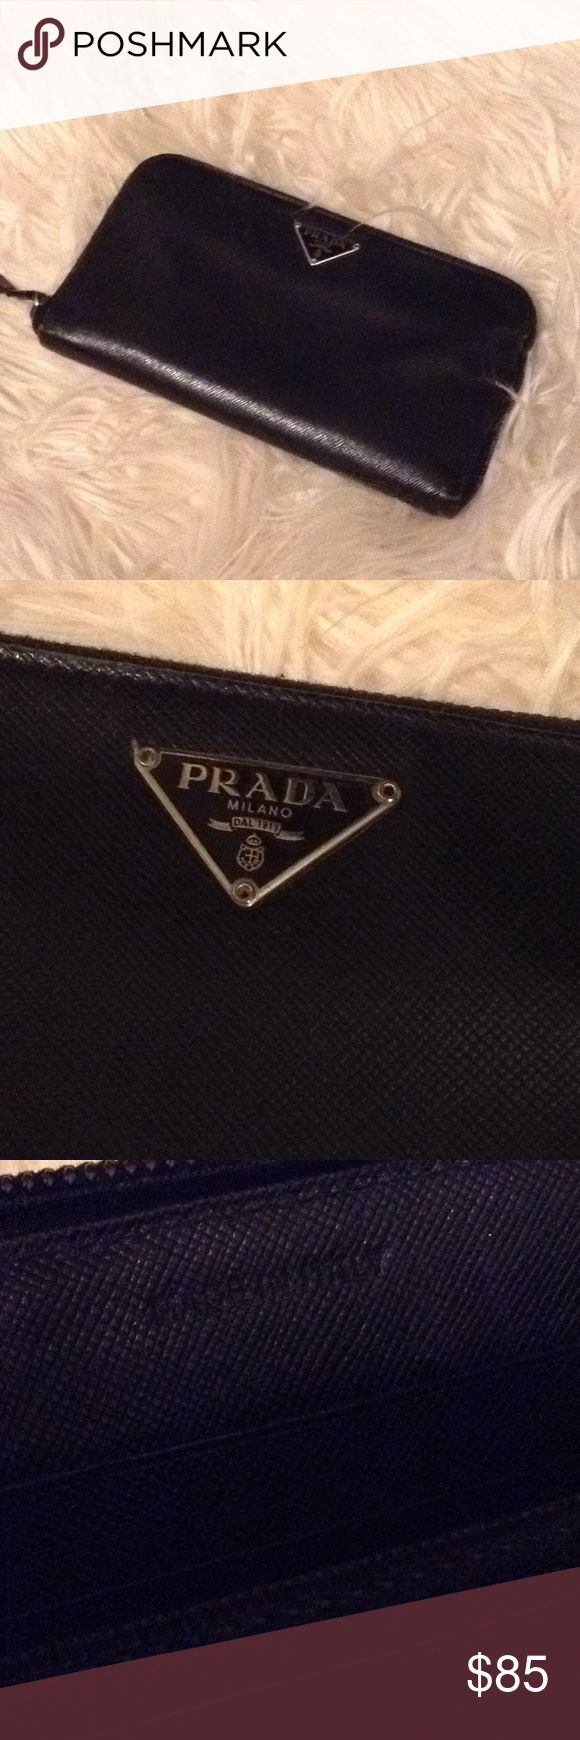 Prada wallet Authentic Prada wallet in fair condition, pull zipper disconnected. Prada Bags Wallets